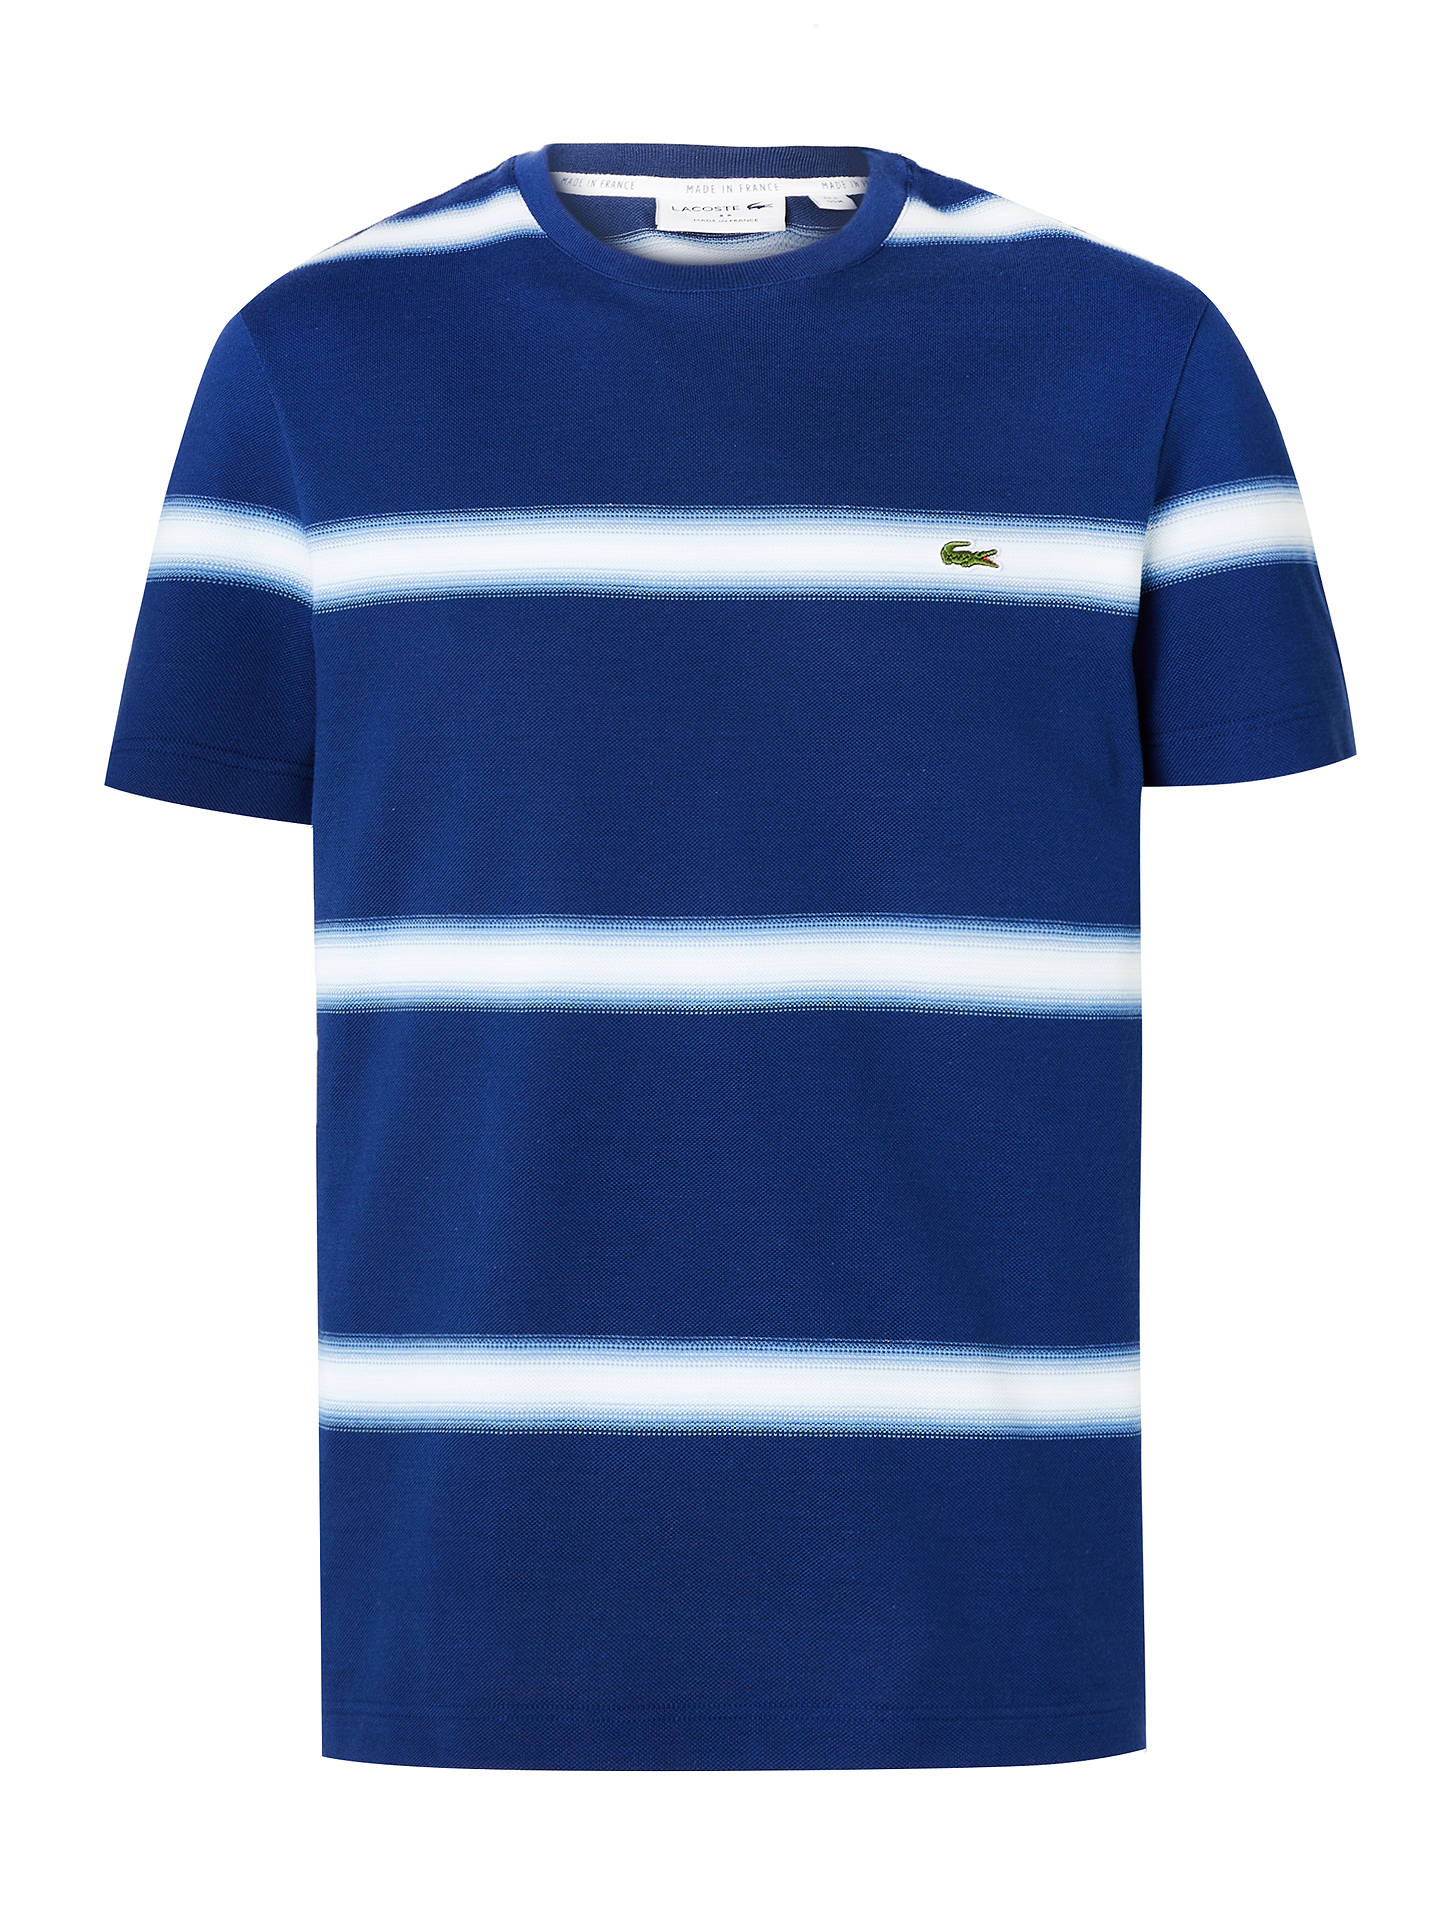 Lacoste White /& Navy Striped Crew Neck T-Shirt